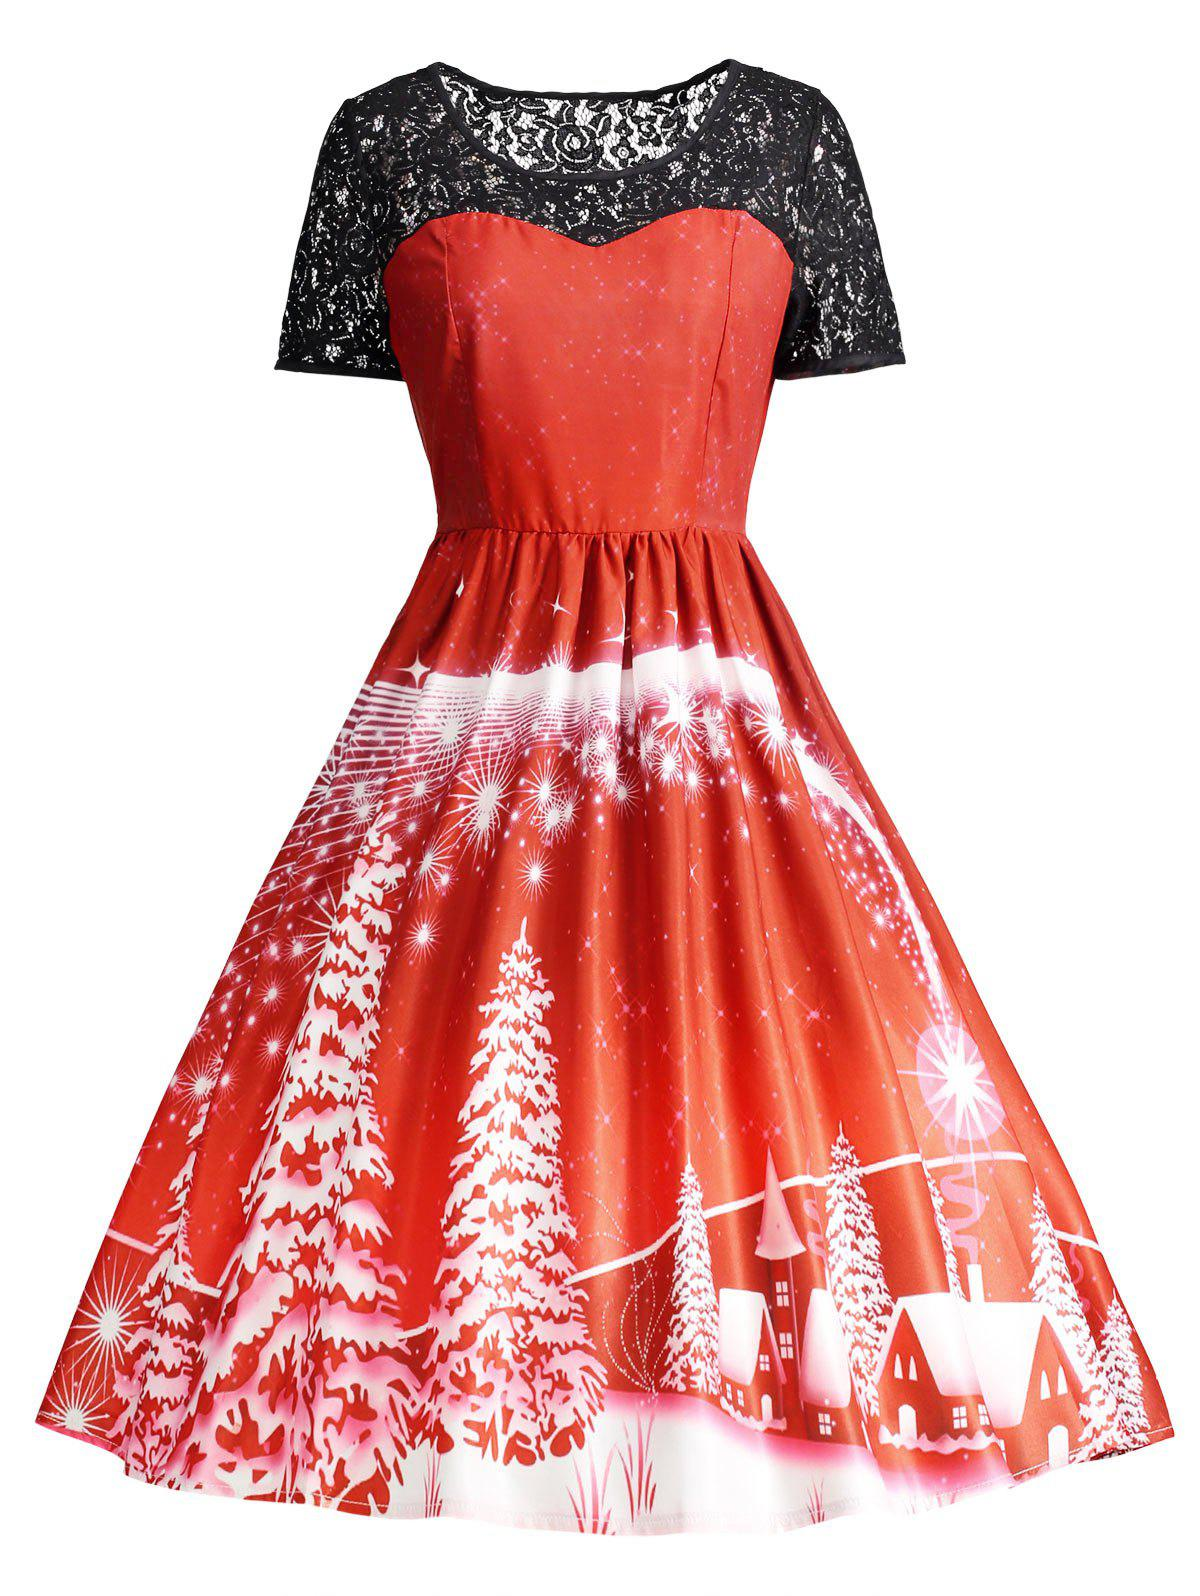 Buy Print Lace Trim Vintage Party Dress